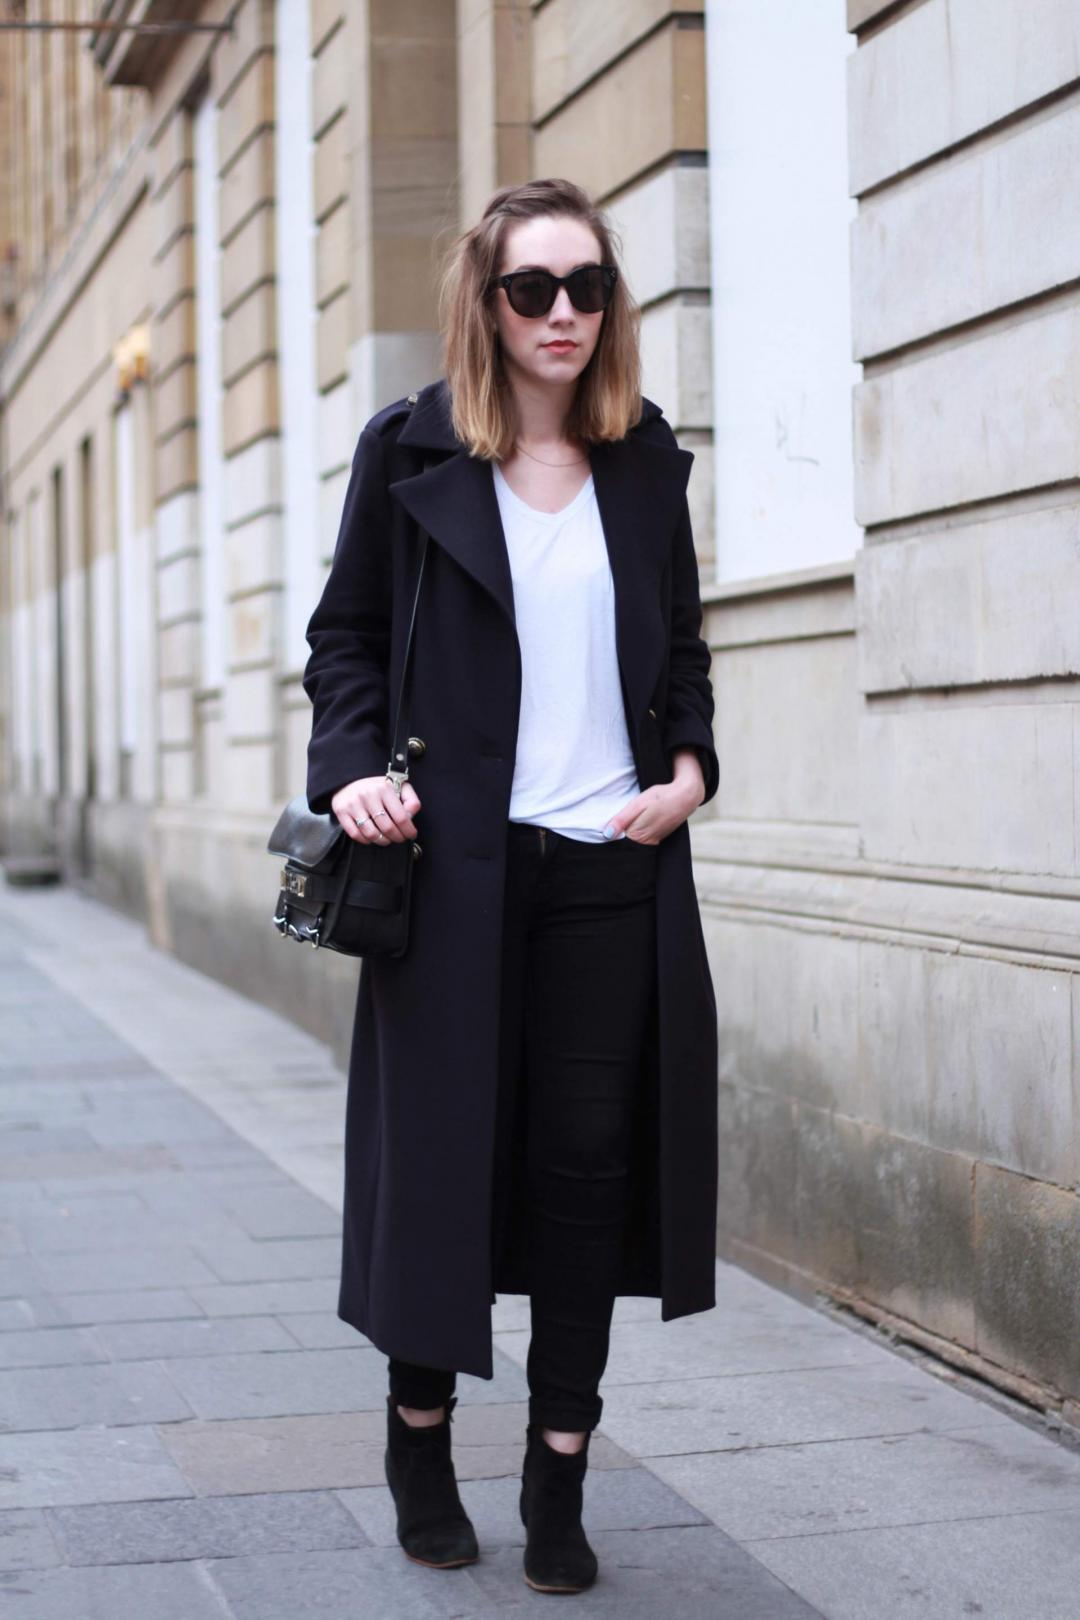 zara-navy-militry-coat-isabel-marant-dicker-boots-proenza-schouler-PS11-bag-black-1